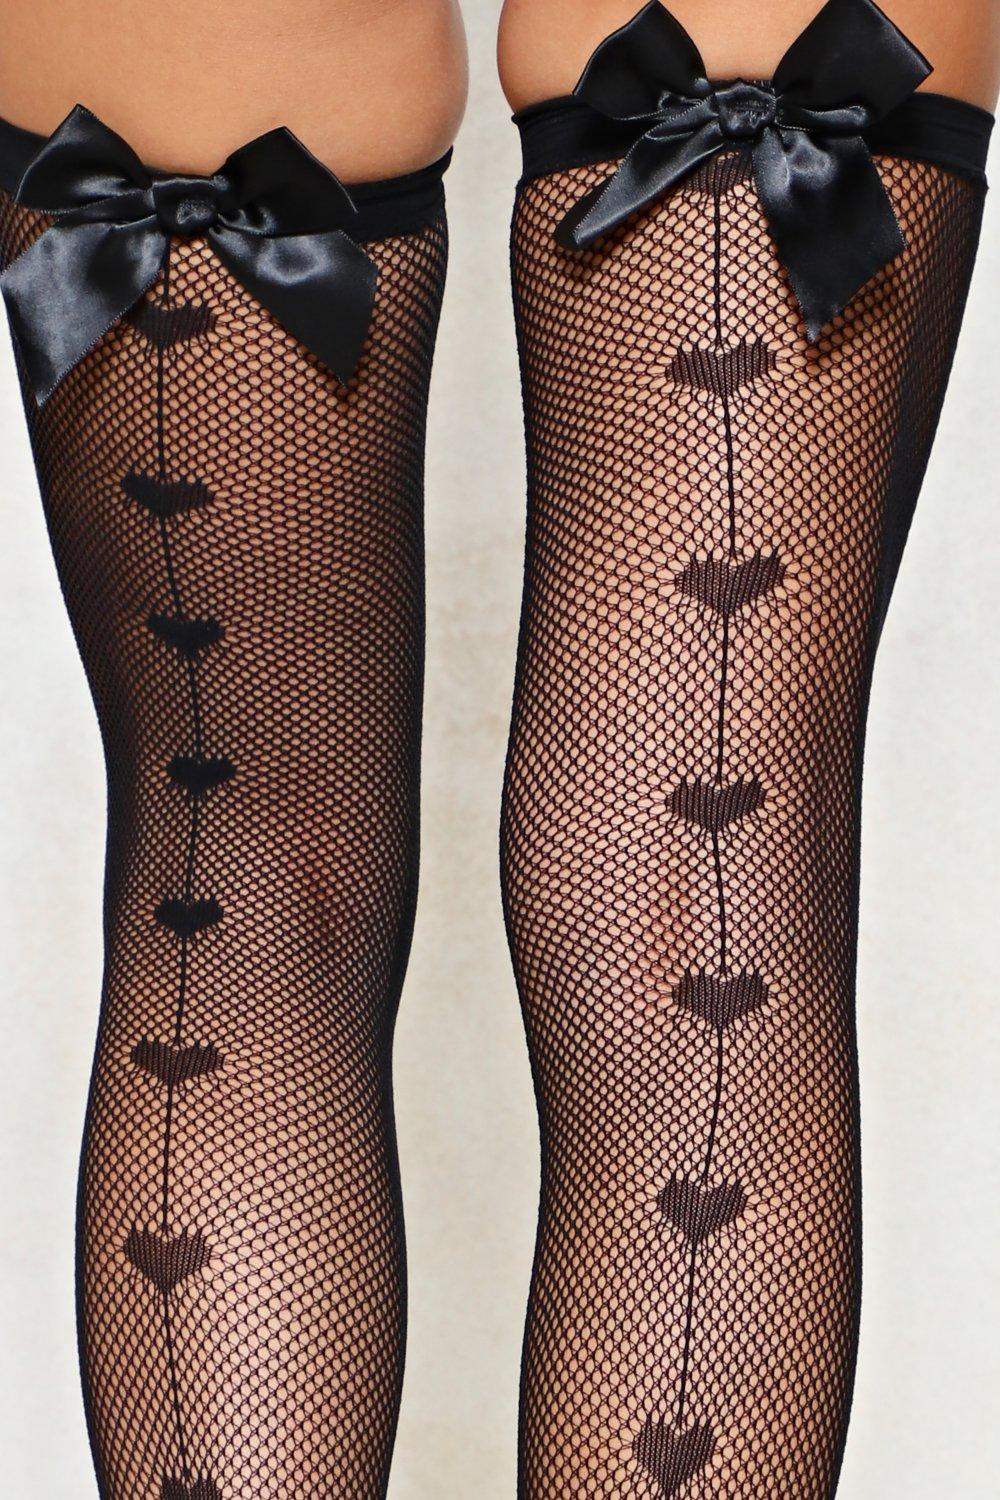 e18142c755ceb2 Womens Black Wear Your Heart on Your Seam Fishnet Stockings. Hover to zoom